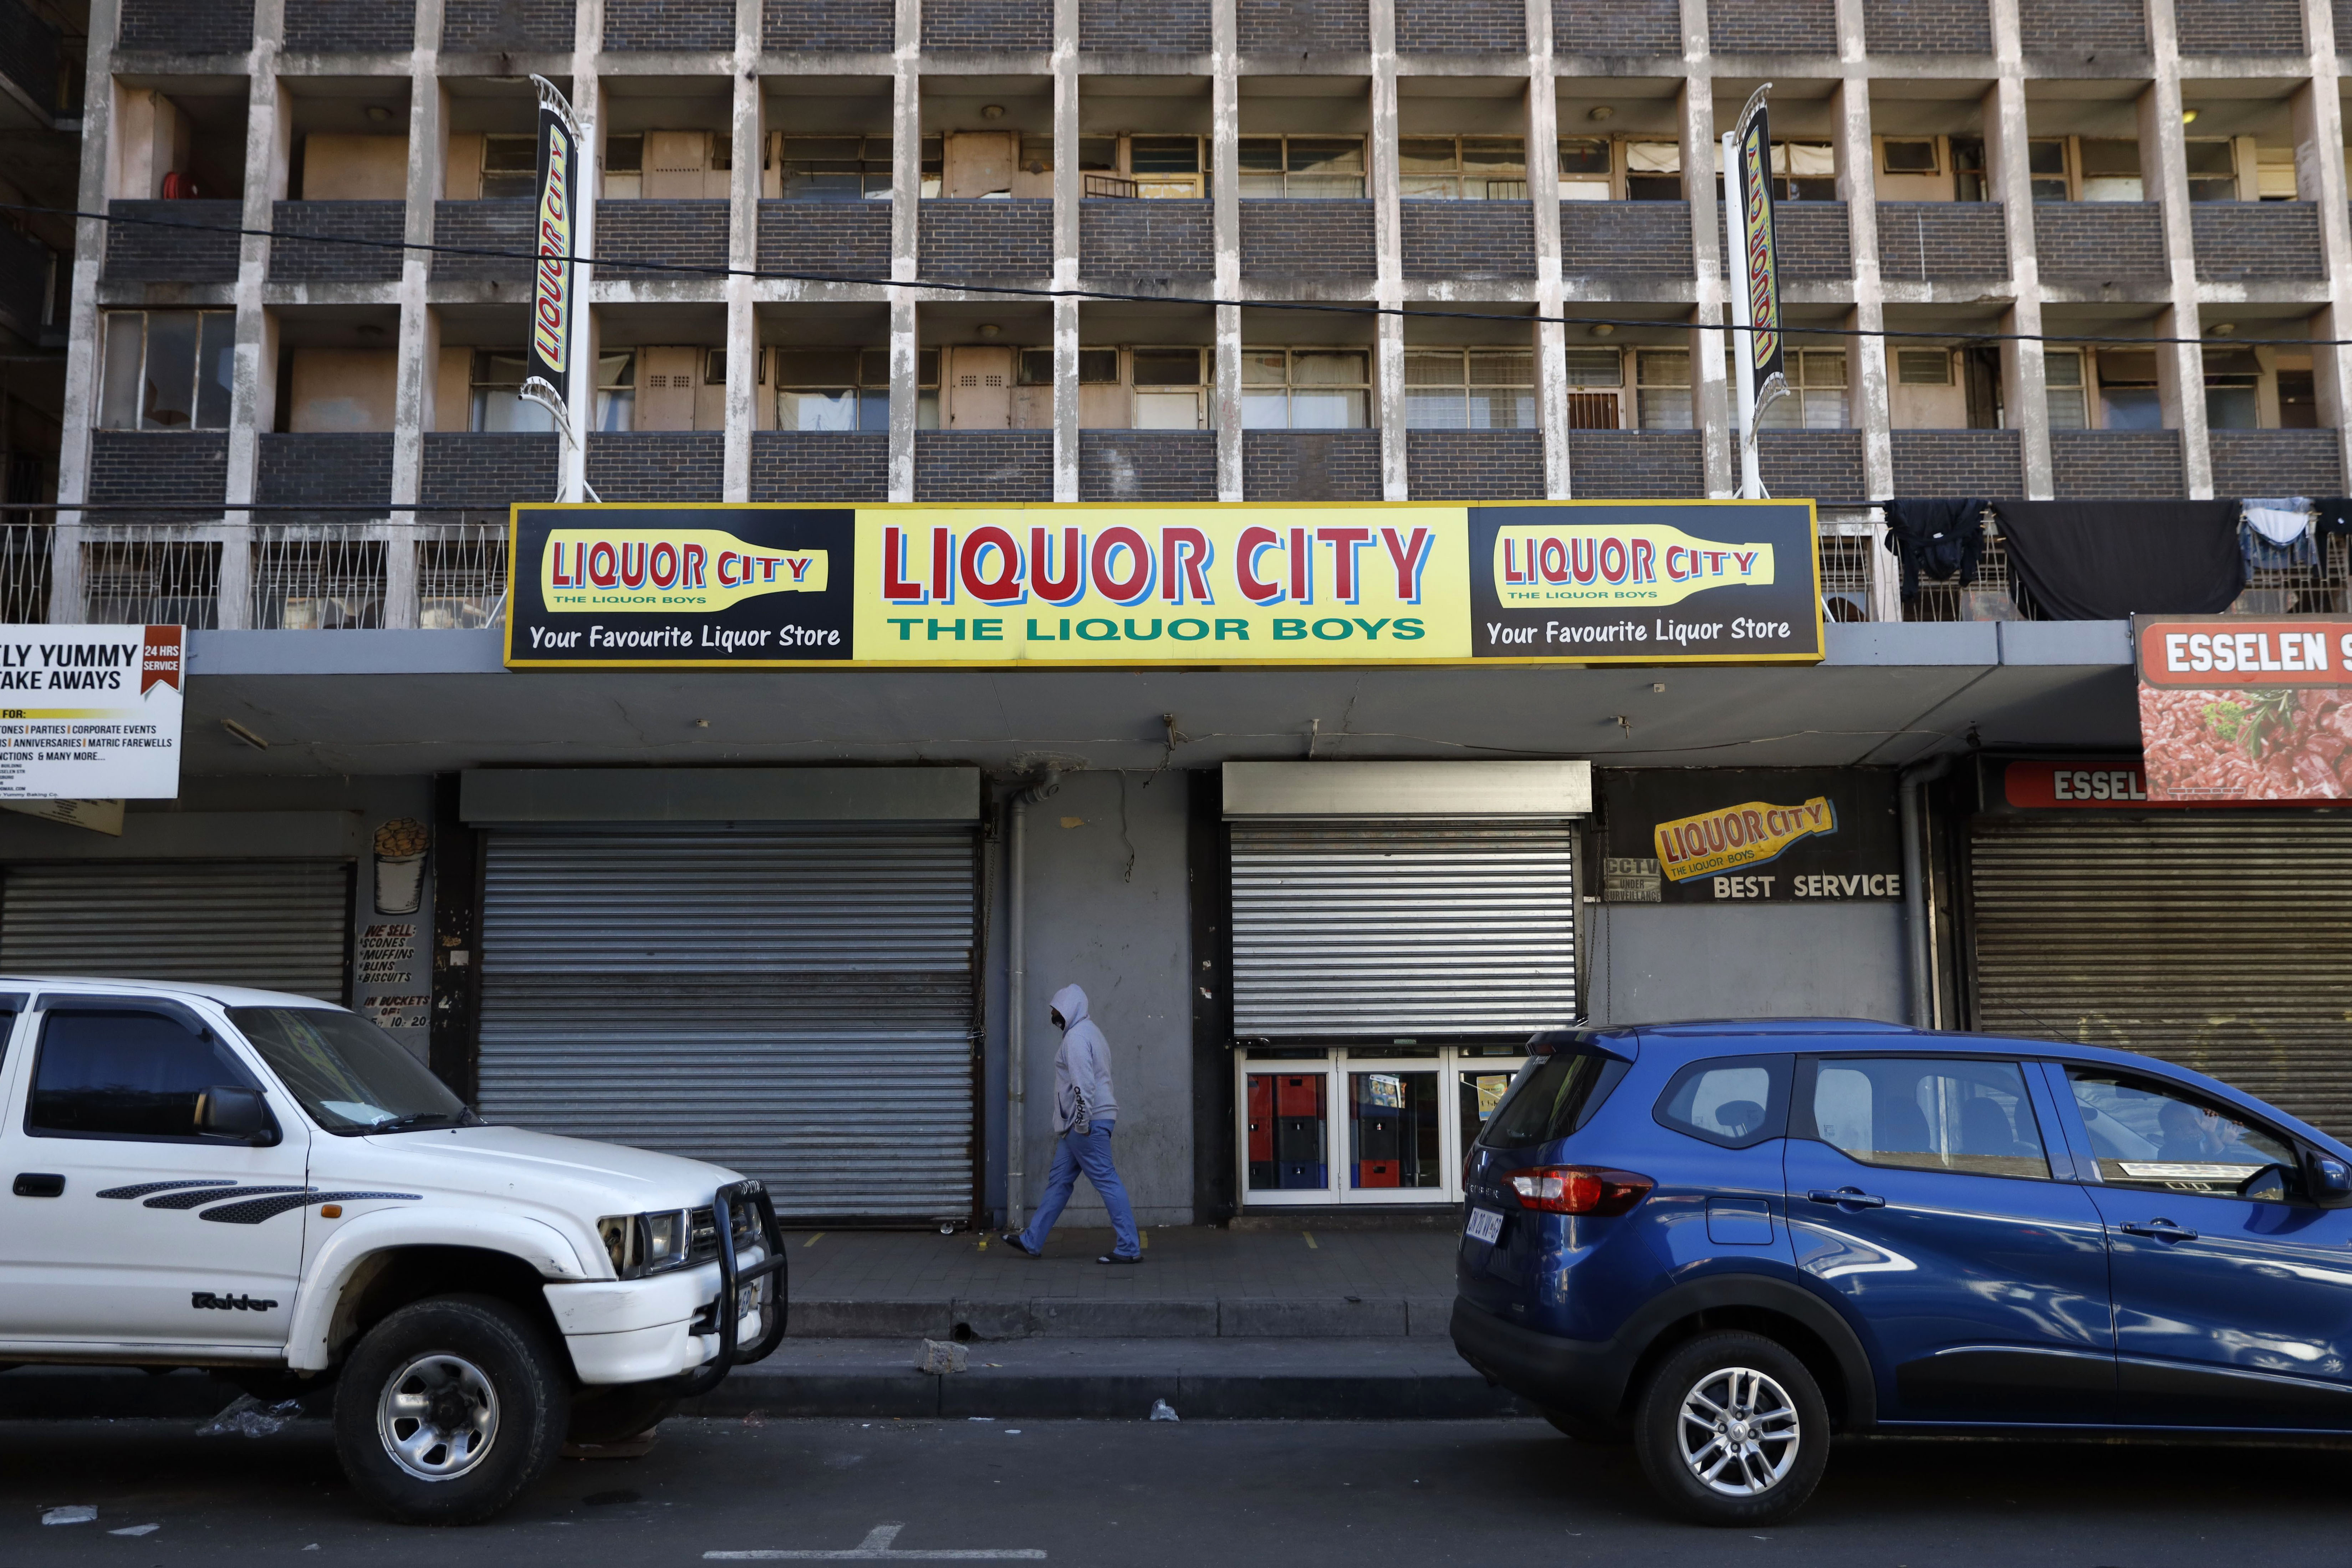 A person walks by a closed liquor shop in the Hillbrow neighborhood of Johannesburg, South Africa, on July 13.